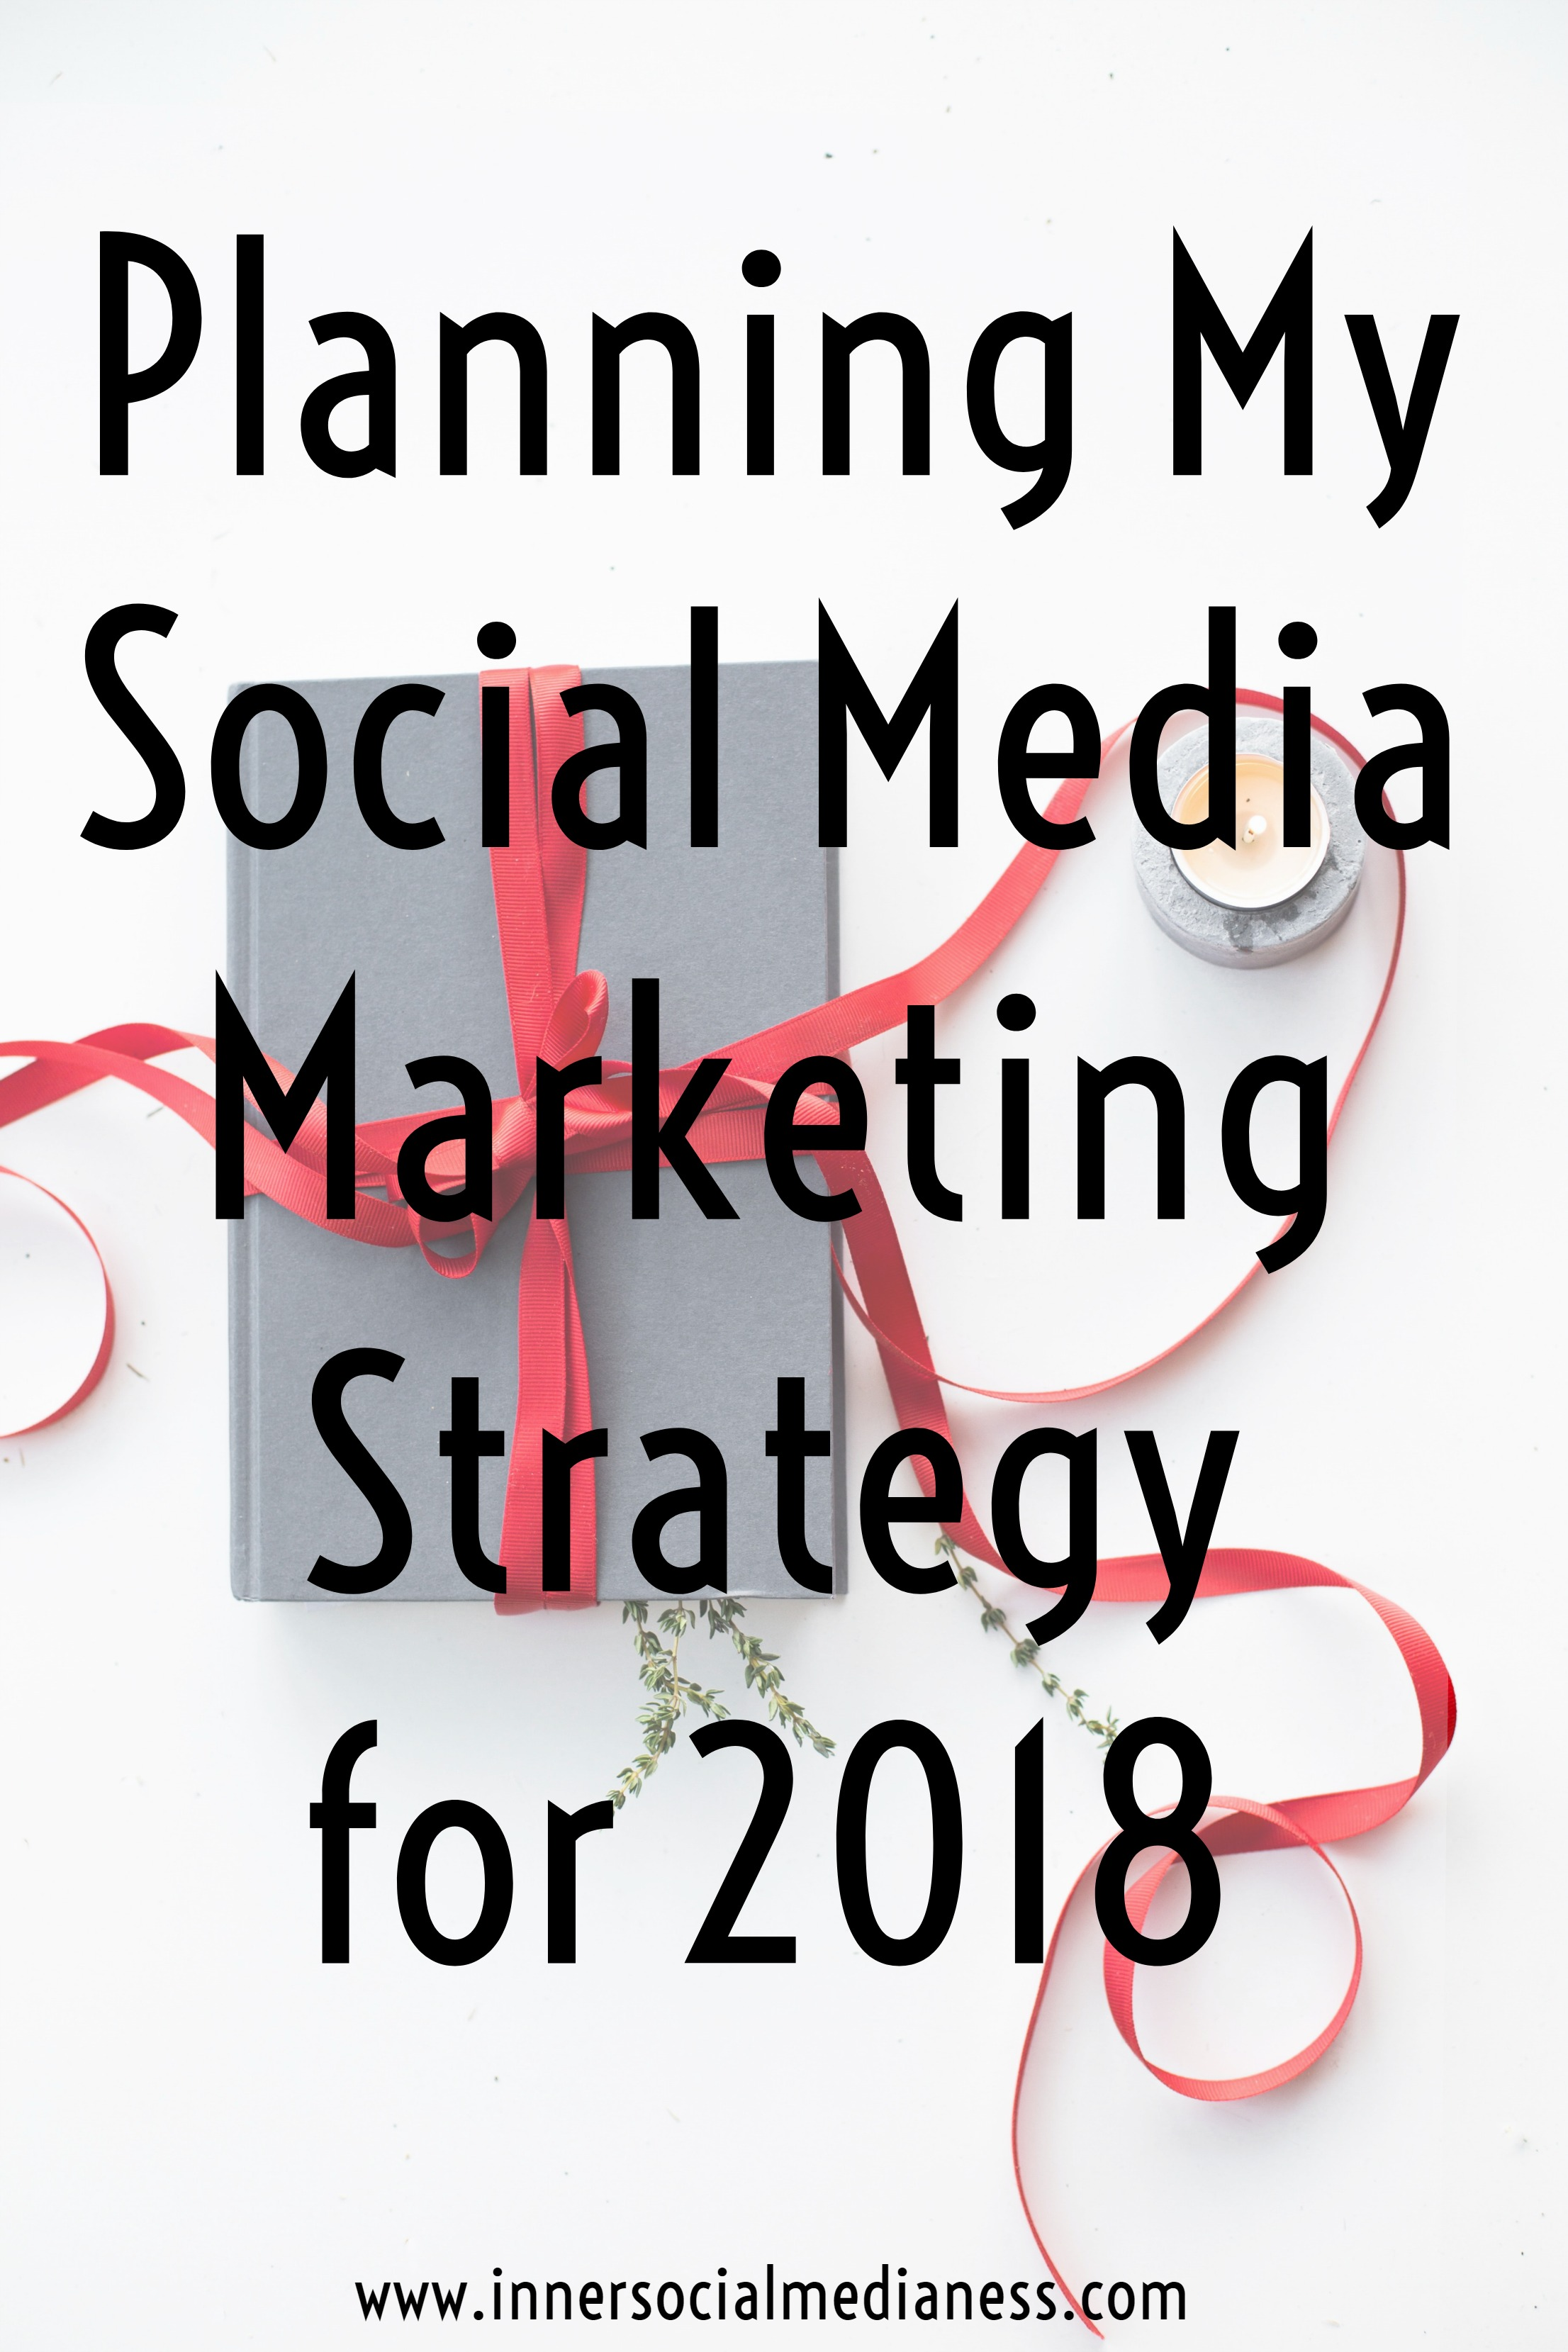 Planning My Social Media Marketing Strategy for 2018 - Have you been able to find some time to reflect on your business plans and how your year went? Take a look at what I learned learn from my struggles and how I celebrated my success. This is my social media story. This is my truth. What's yours?